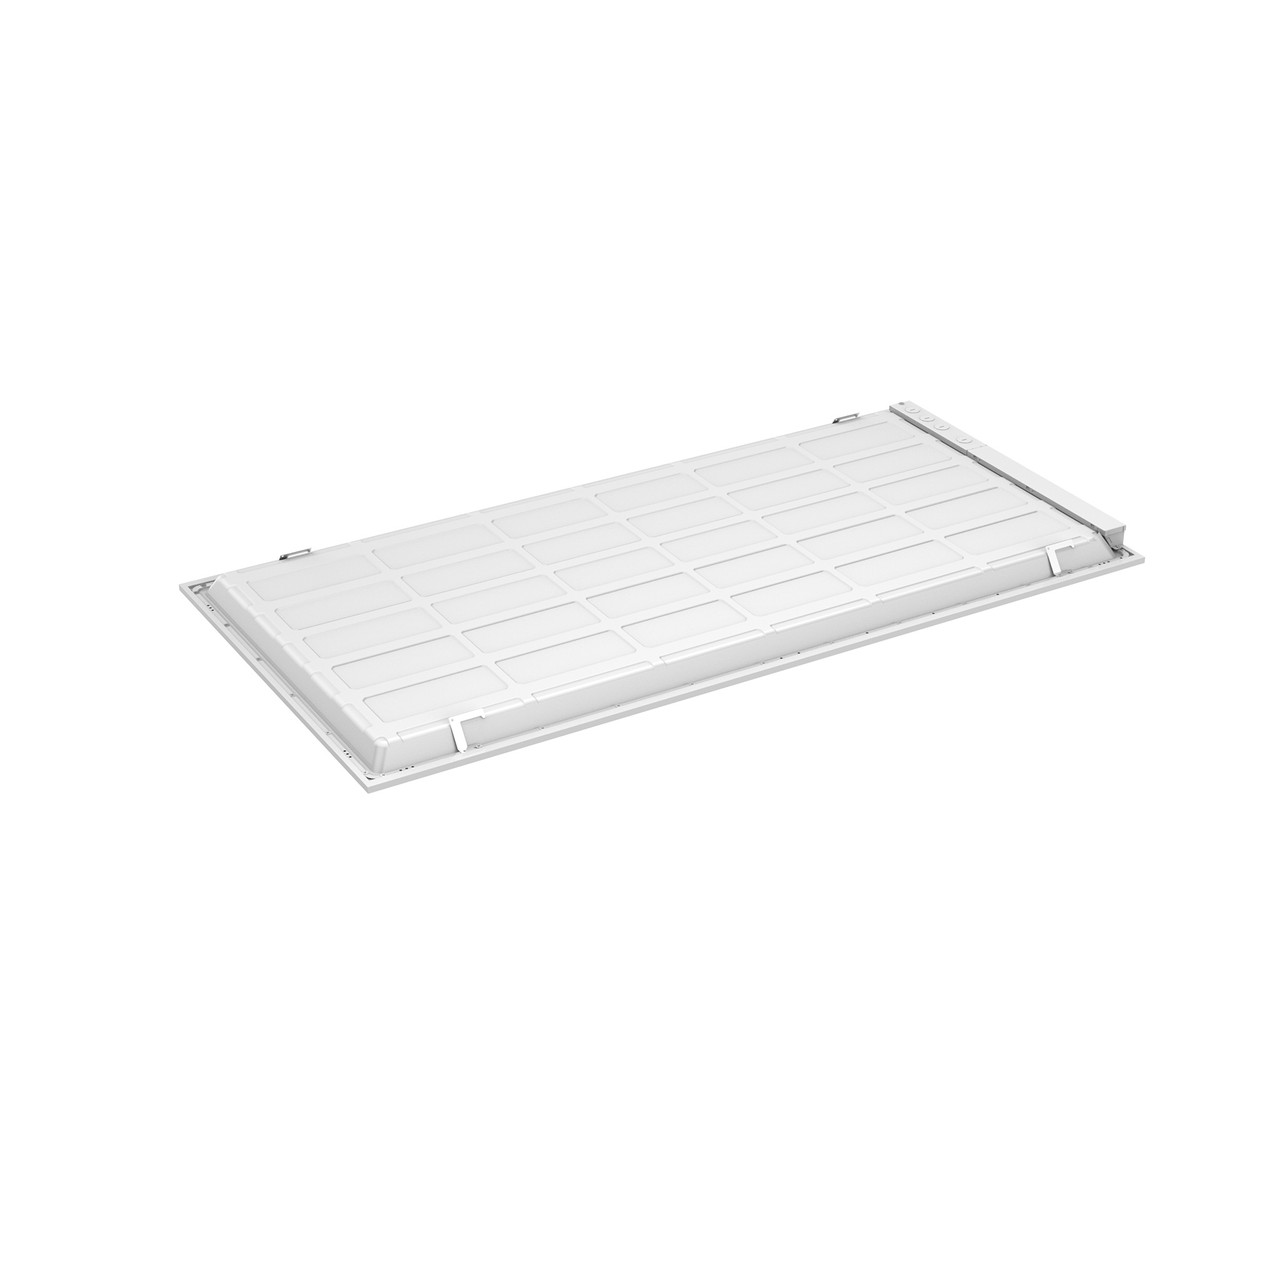 LED Ceiling Panels, 2' X 4', 120-277VAC, 30 or 36W, Dimmable, 3500K, 4000K, 5000K, 5000-6375LM